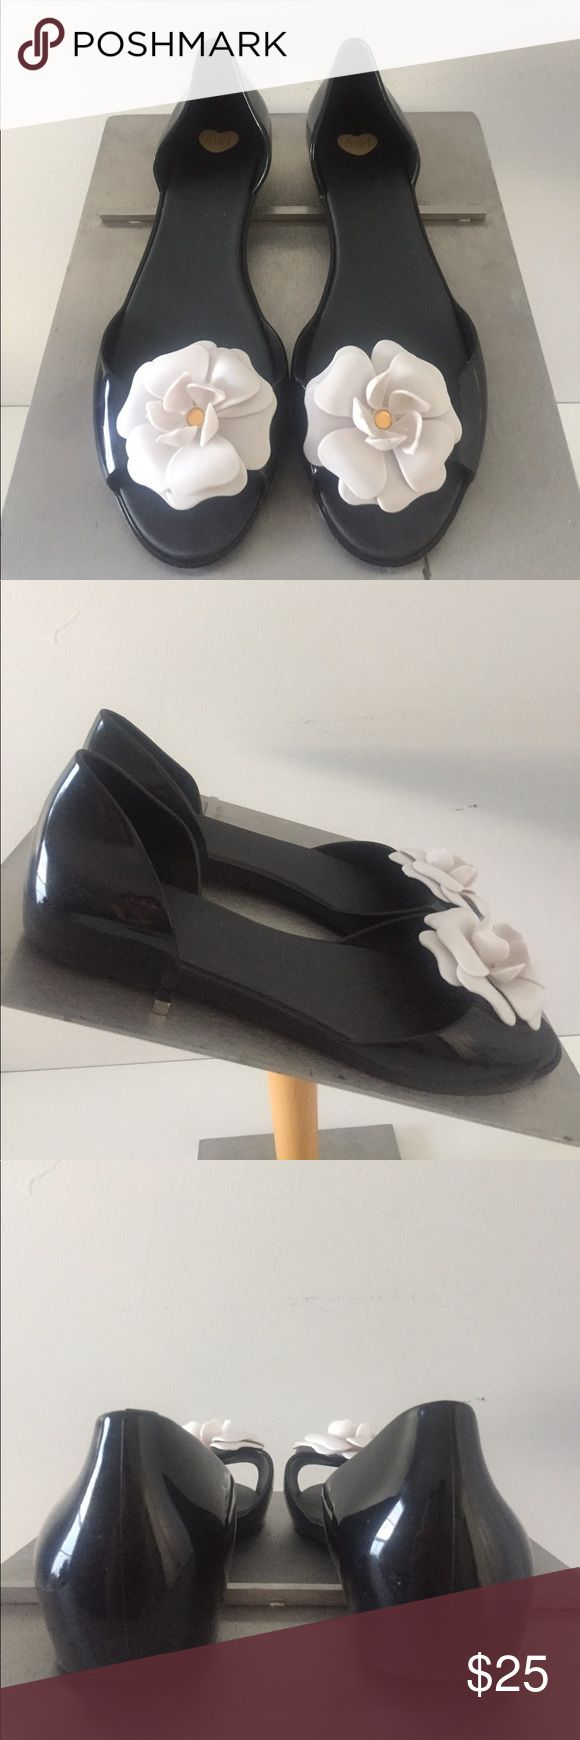 Melissa Jelly Flats Melissa is known for make a stylish jelly shoe.  Open toe flats have a white flower across the forefoot, adding a chic appeal.  Minor, minor, minor scuffs that does not kill the shoes beauty.  Wear from spring to fall. Melissa Shoes Flats & Loafers